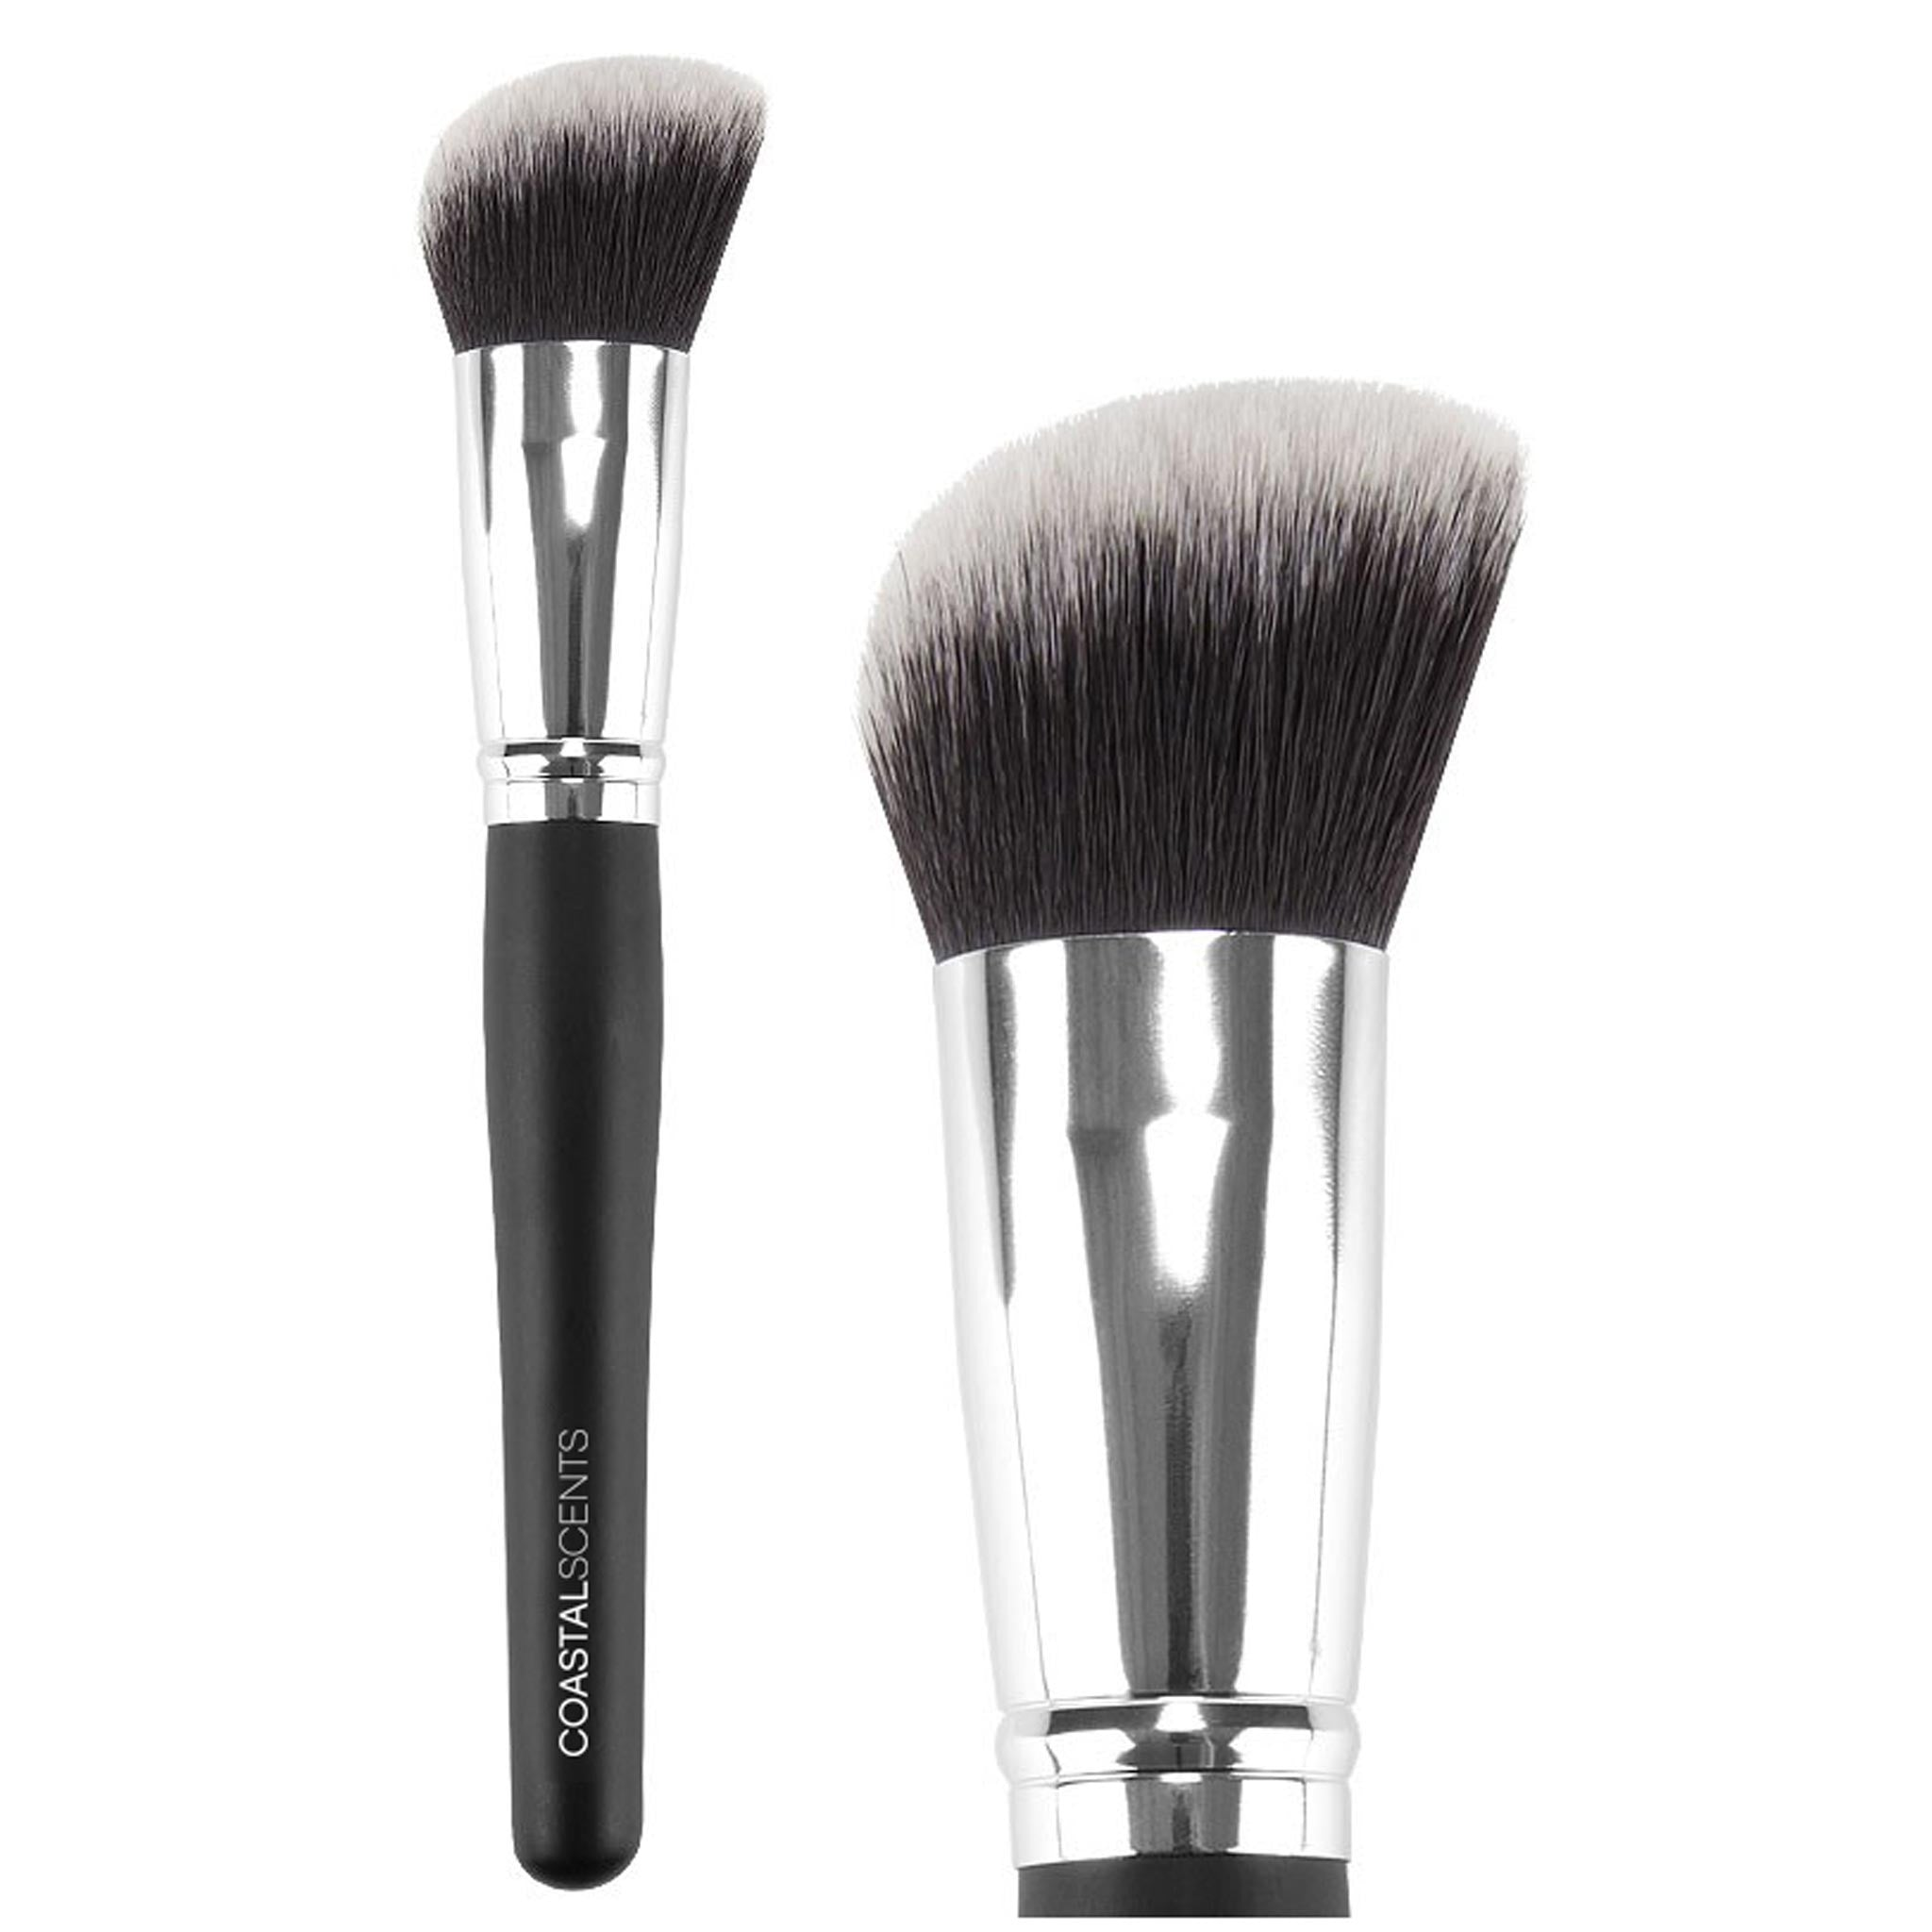 Coastal Scents coupon: Classic Angled Powder Brush Synthetic